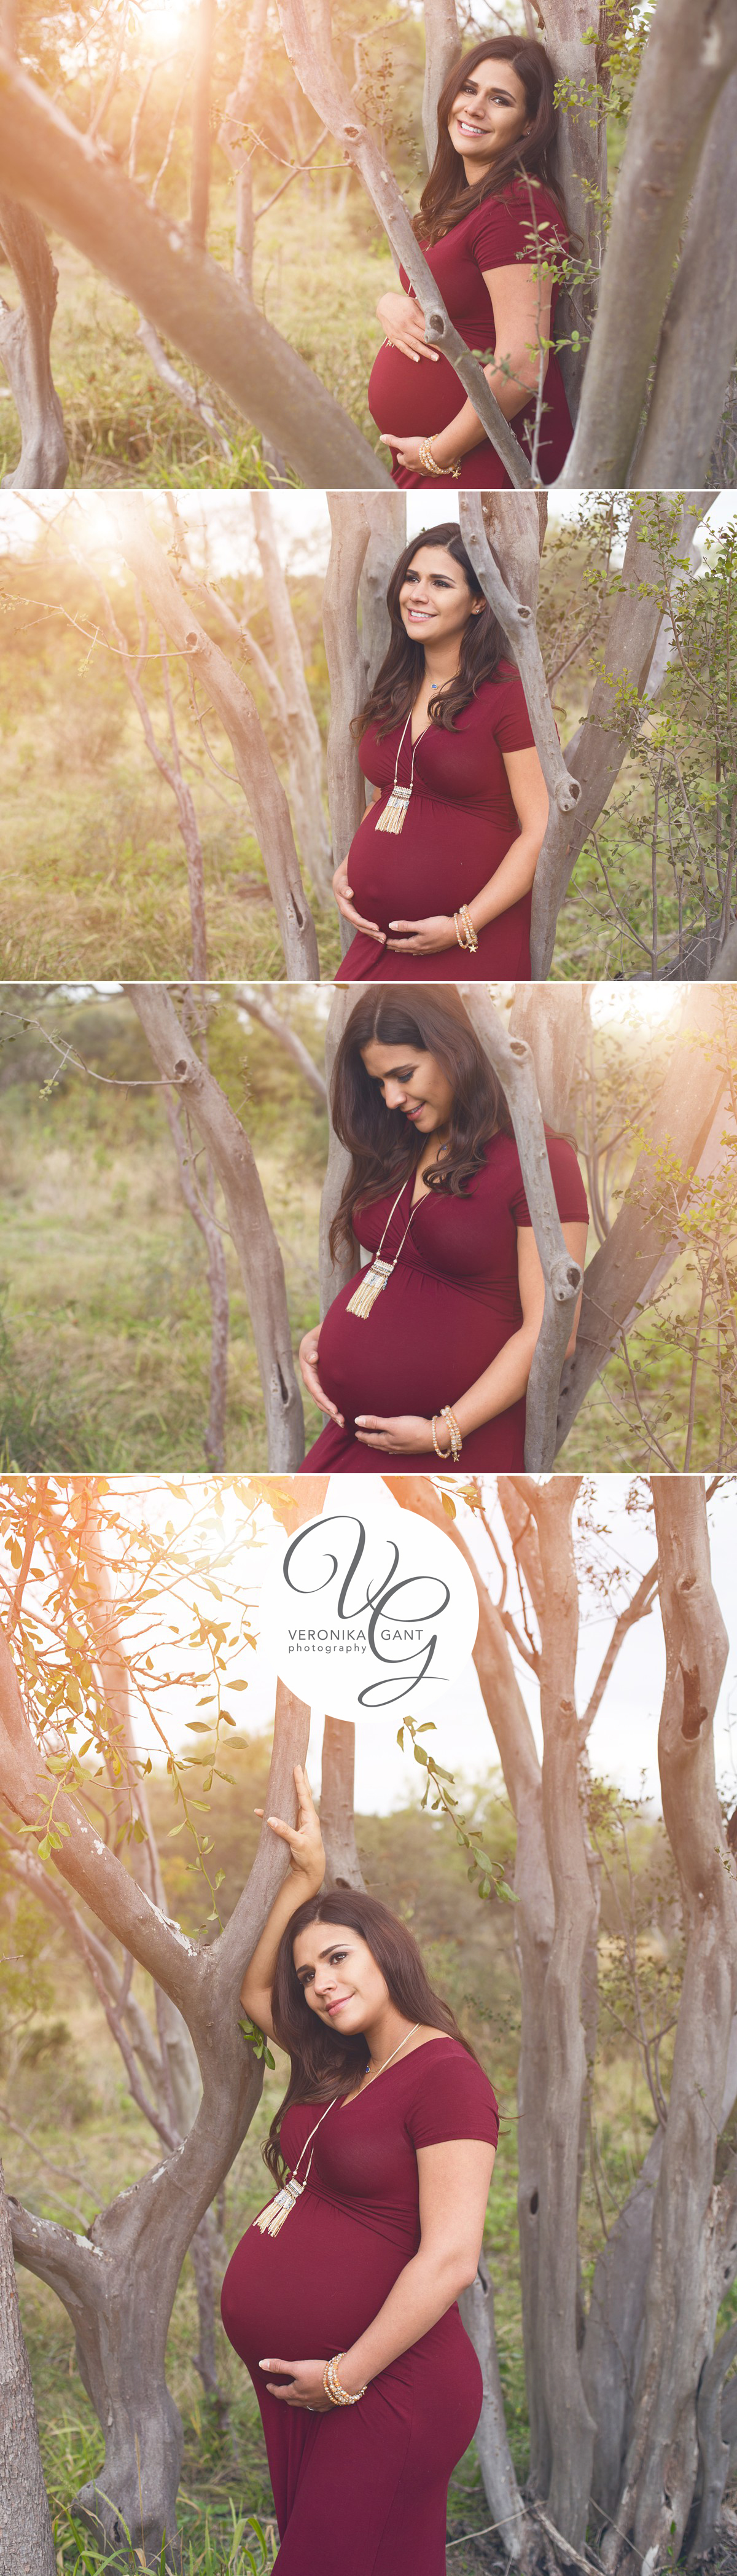 San-Antonio-Maternity-Photography-Sophia-by-Veronika-Gant-04